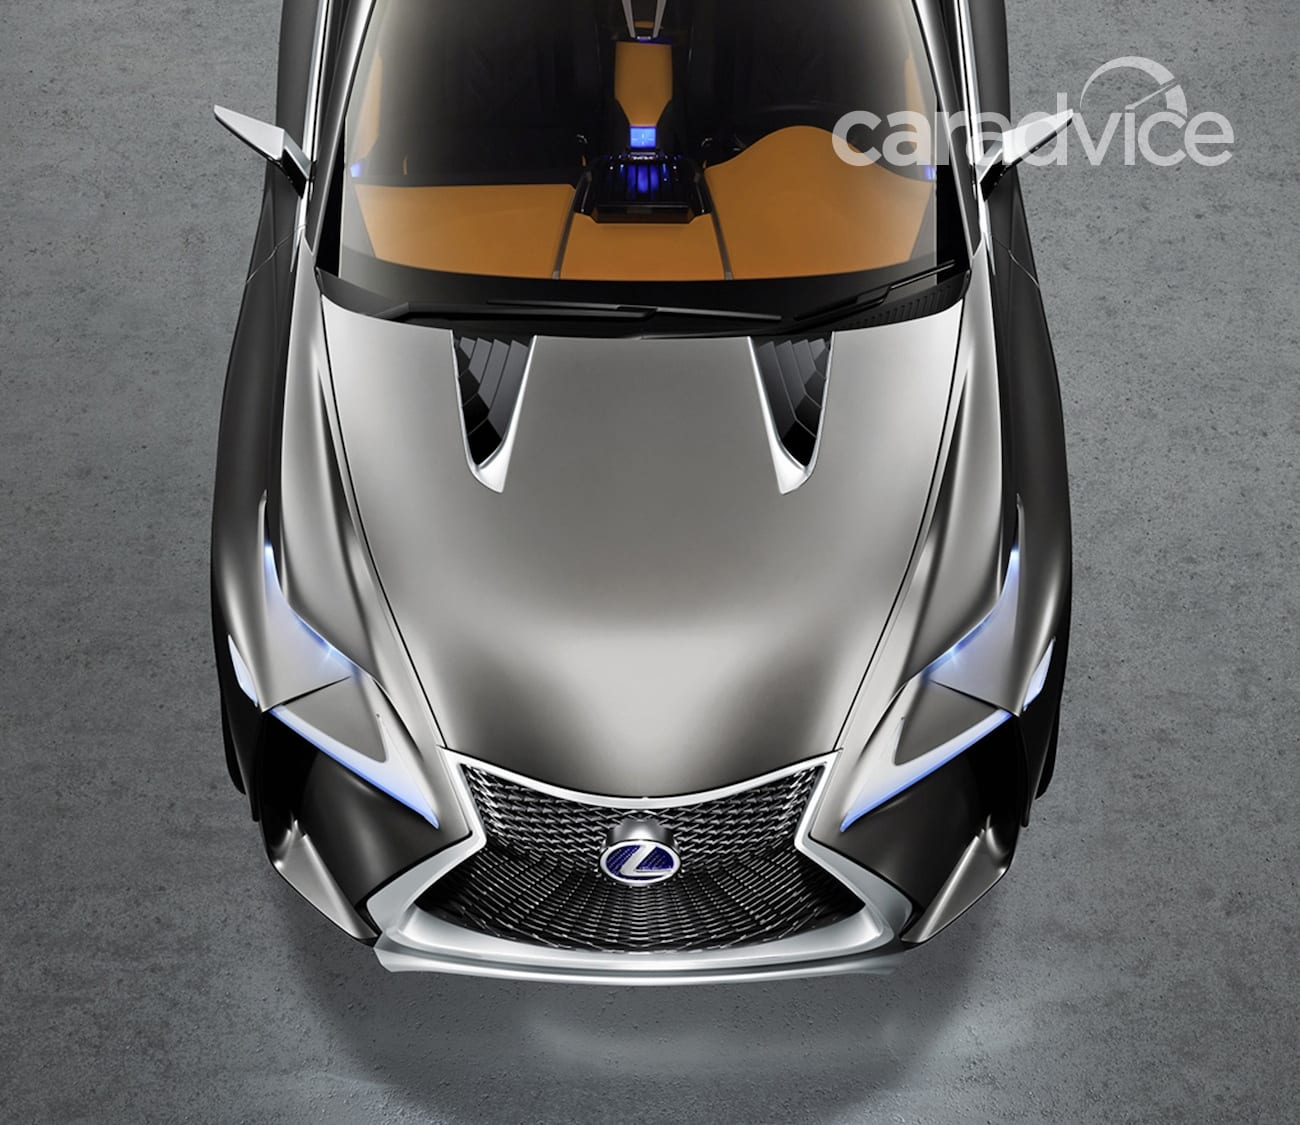 Lexus Lf Lc Sports Car Could Be Made Will It Be A Hybrid: Lexus LF-NX Concept: More Images Of Future Q5, X3 Rival